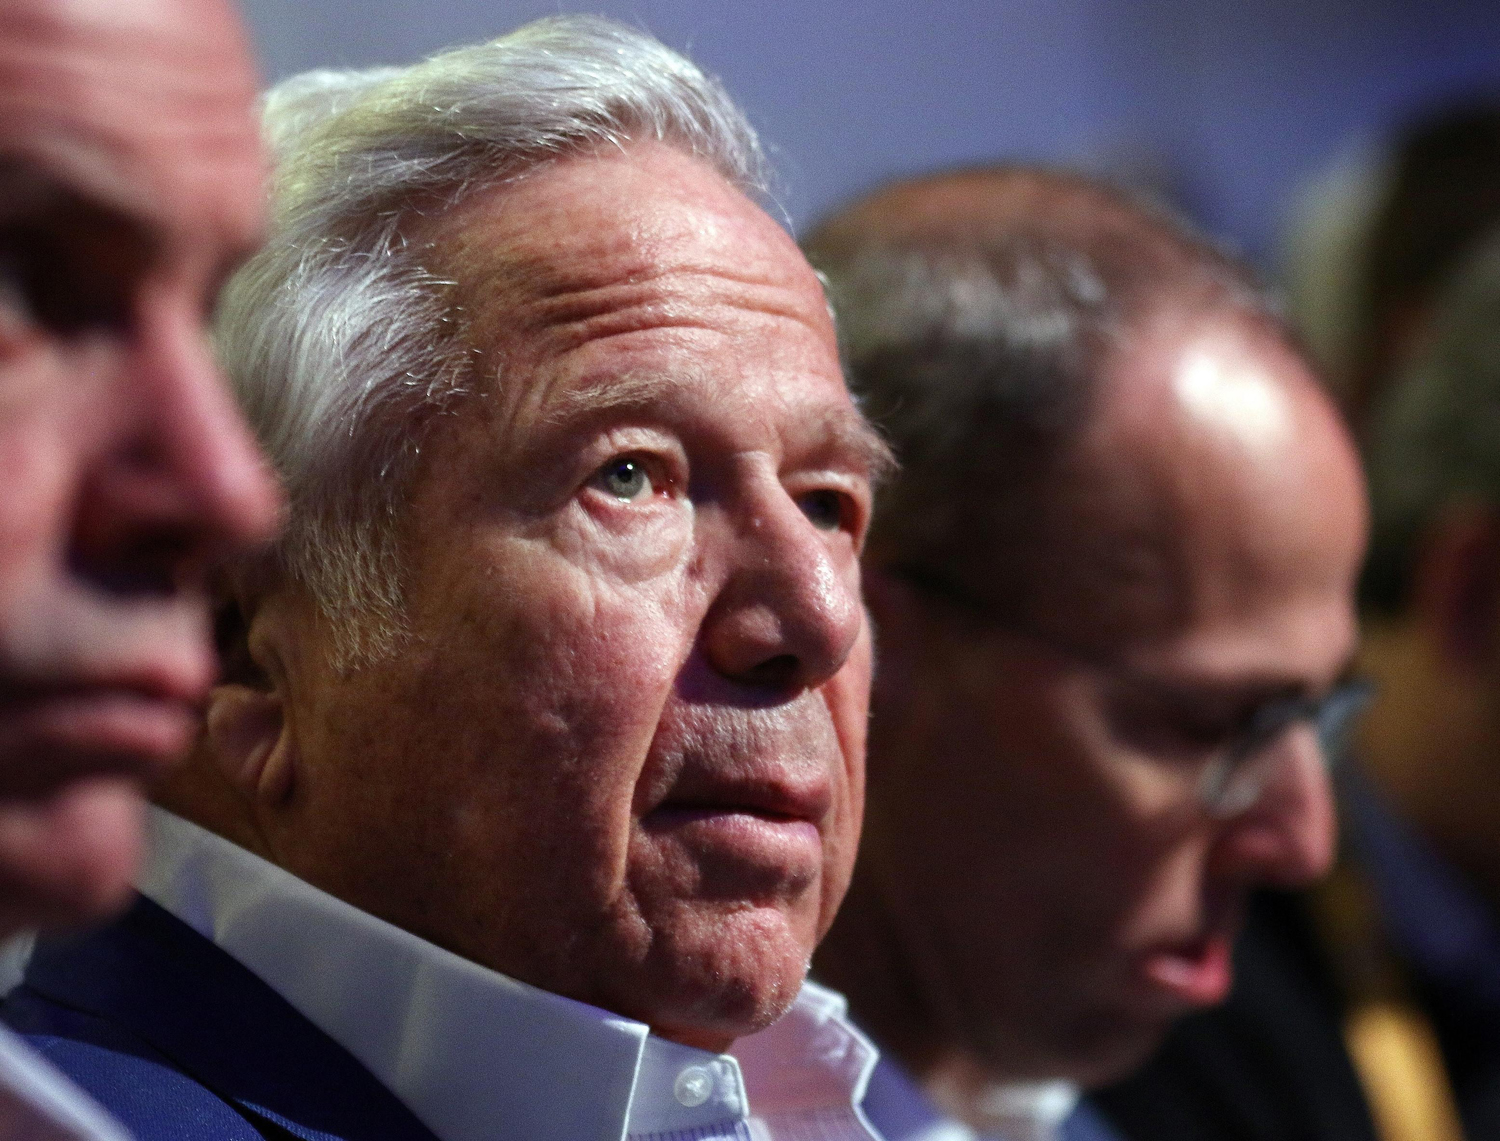 Robert Kraft was charged Friday on two counts of soliciting sex as part of a larger investigation of prostitution and suspected human trafficking in Jupiter, Florida.